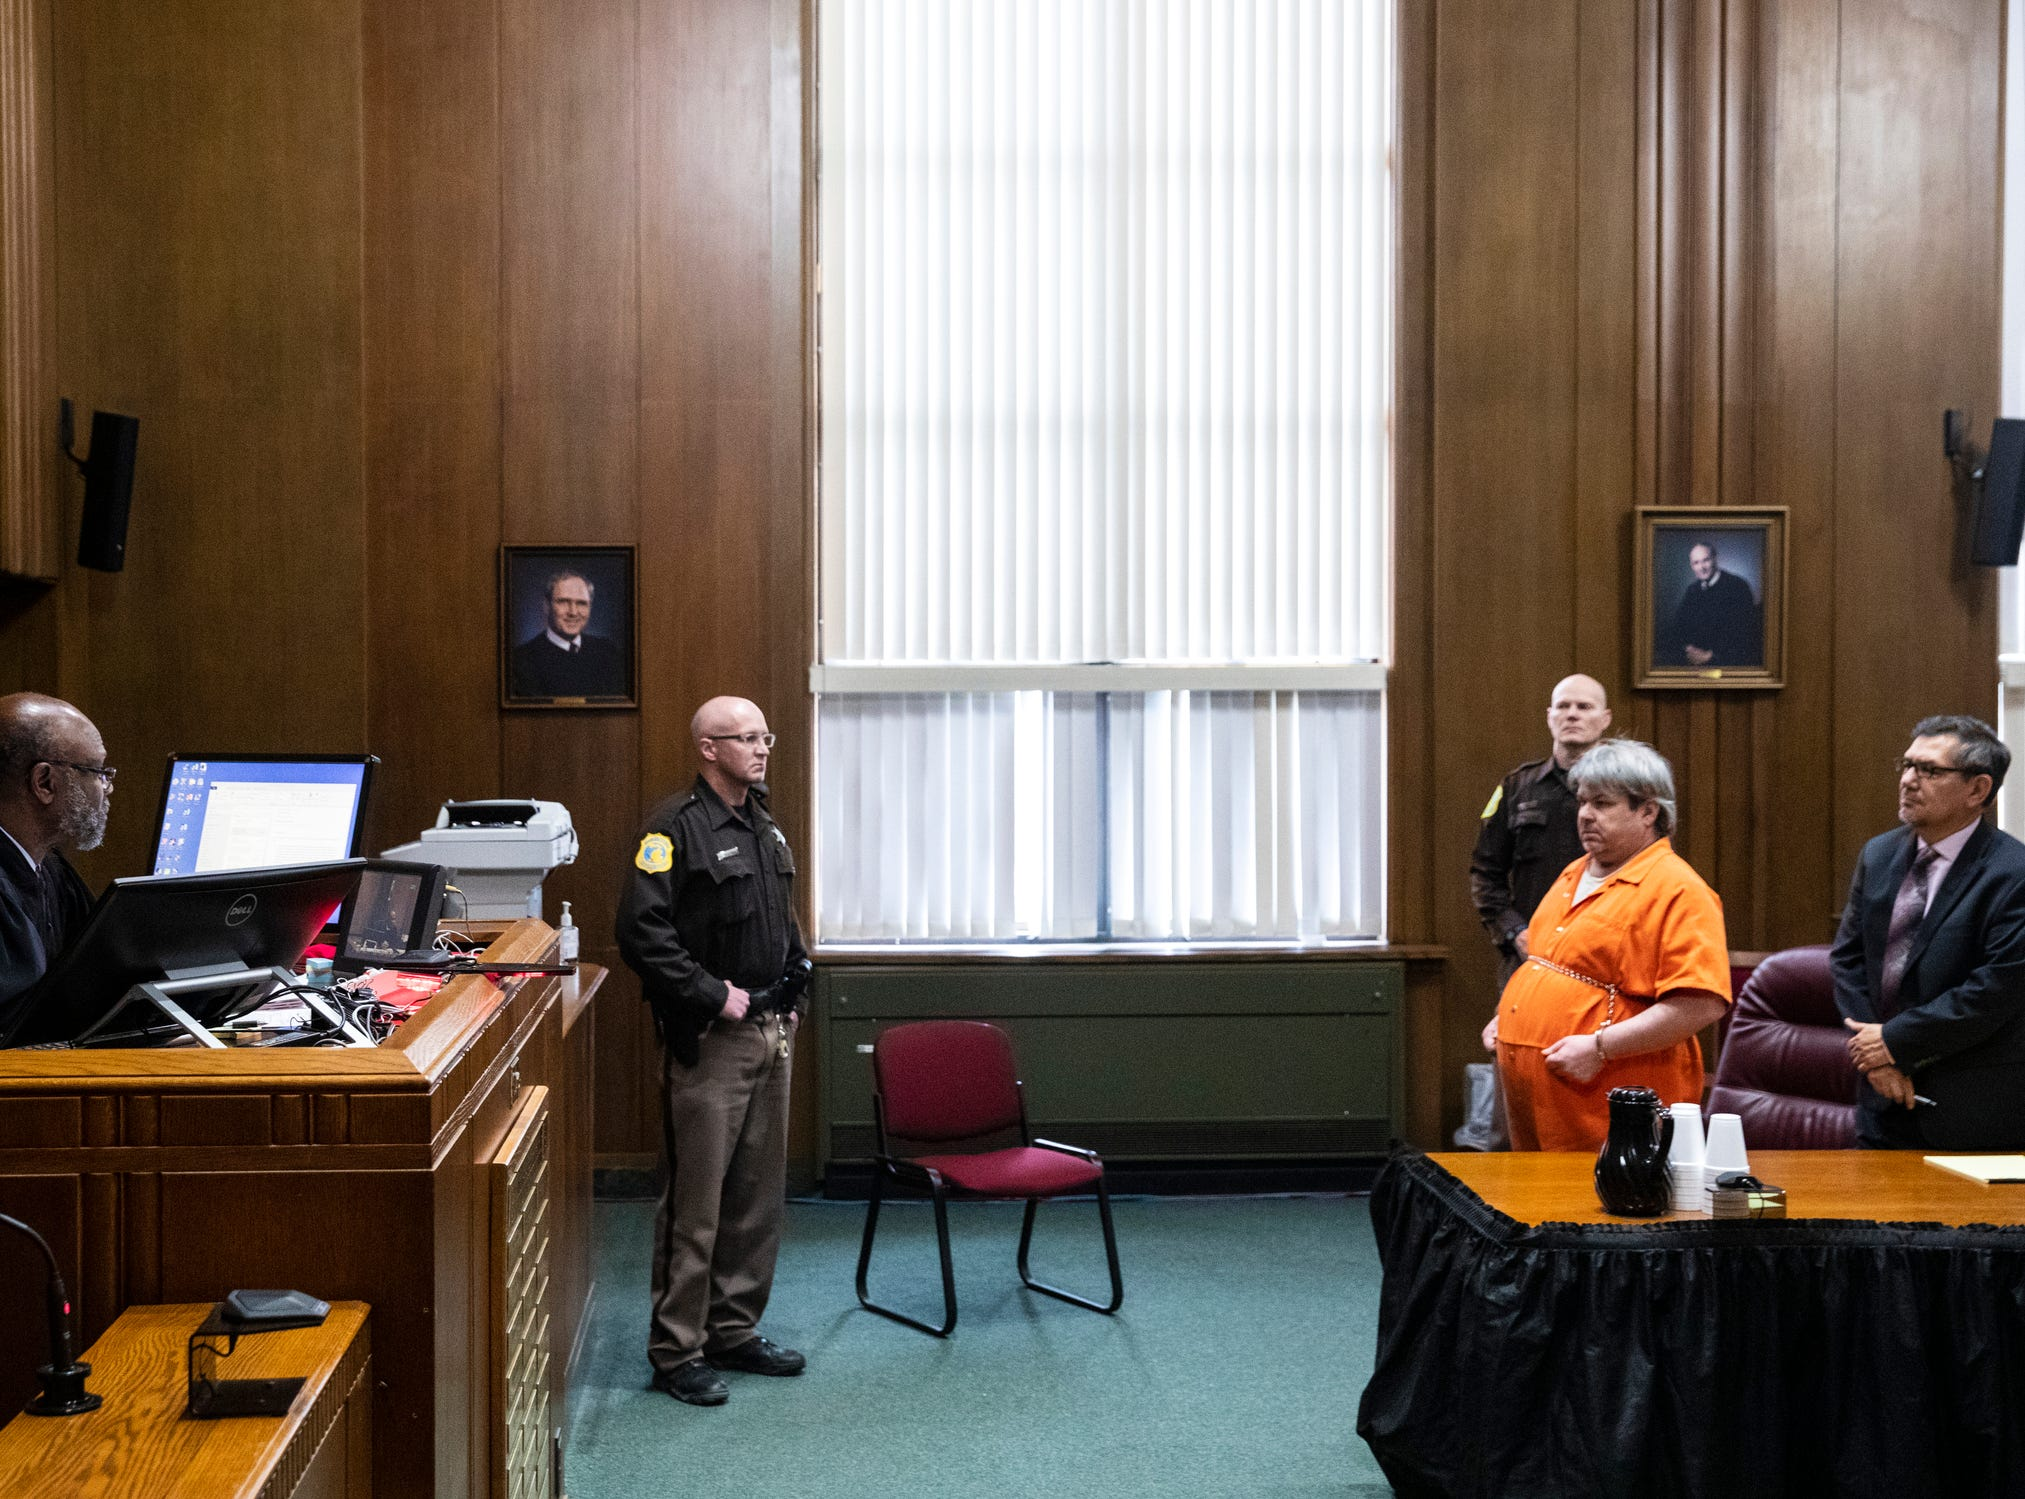 Jason Dalton stands in front of Judge Alexander C. Lipsey as he is sentenced to life in prison without possibility of parole for six counts of murder and several other charges at the Kalamazoo County Courthouse in Kalamazoo, Michigan on Tuesday, Feb. 5, 2019.